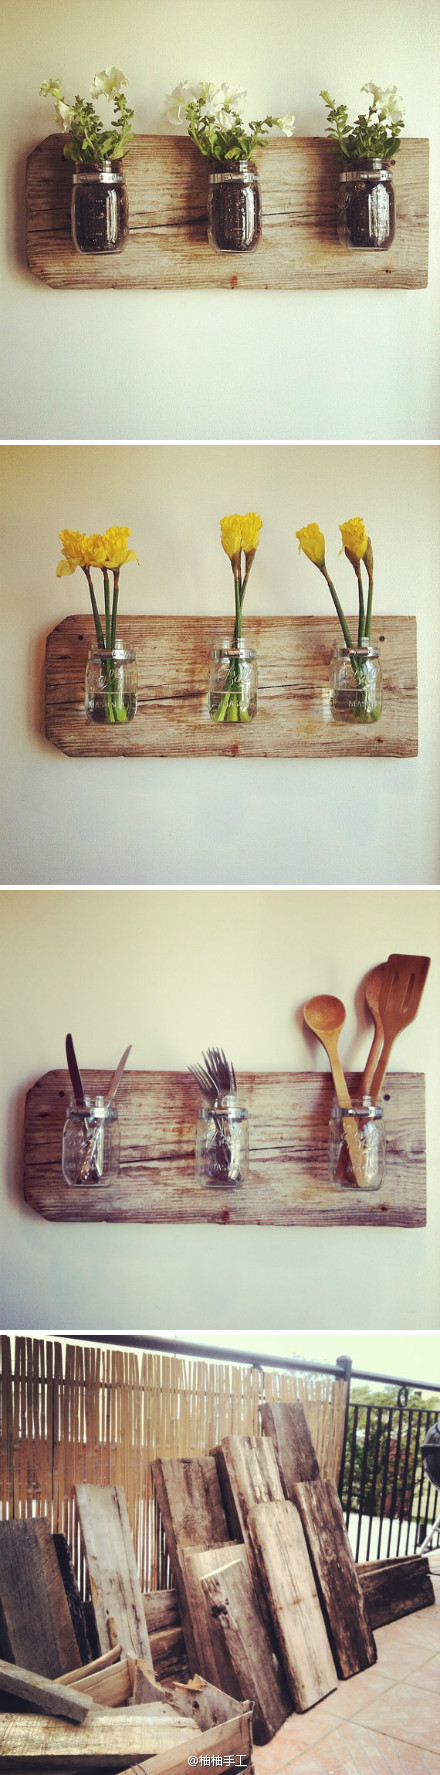 Awesome way to recycle wood and mason jars!